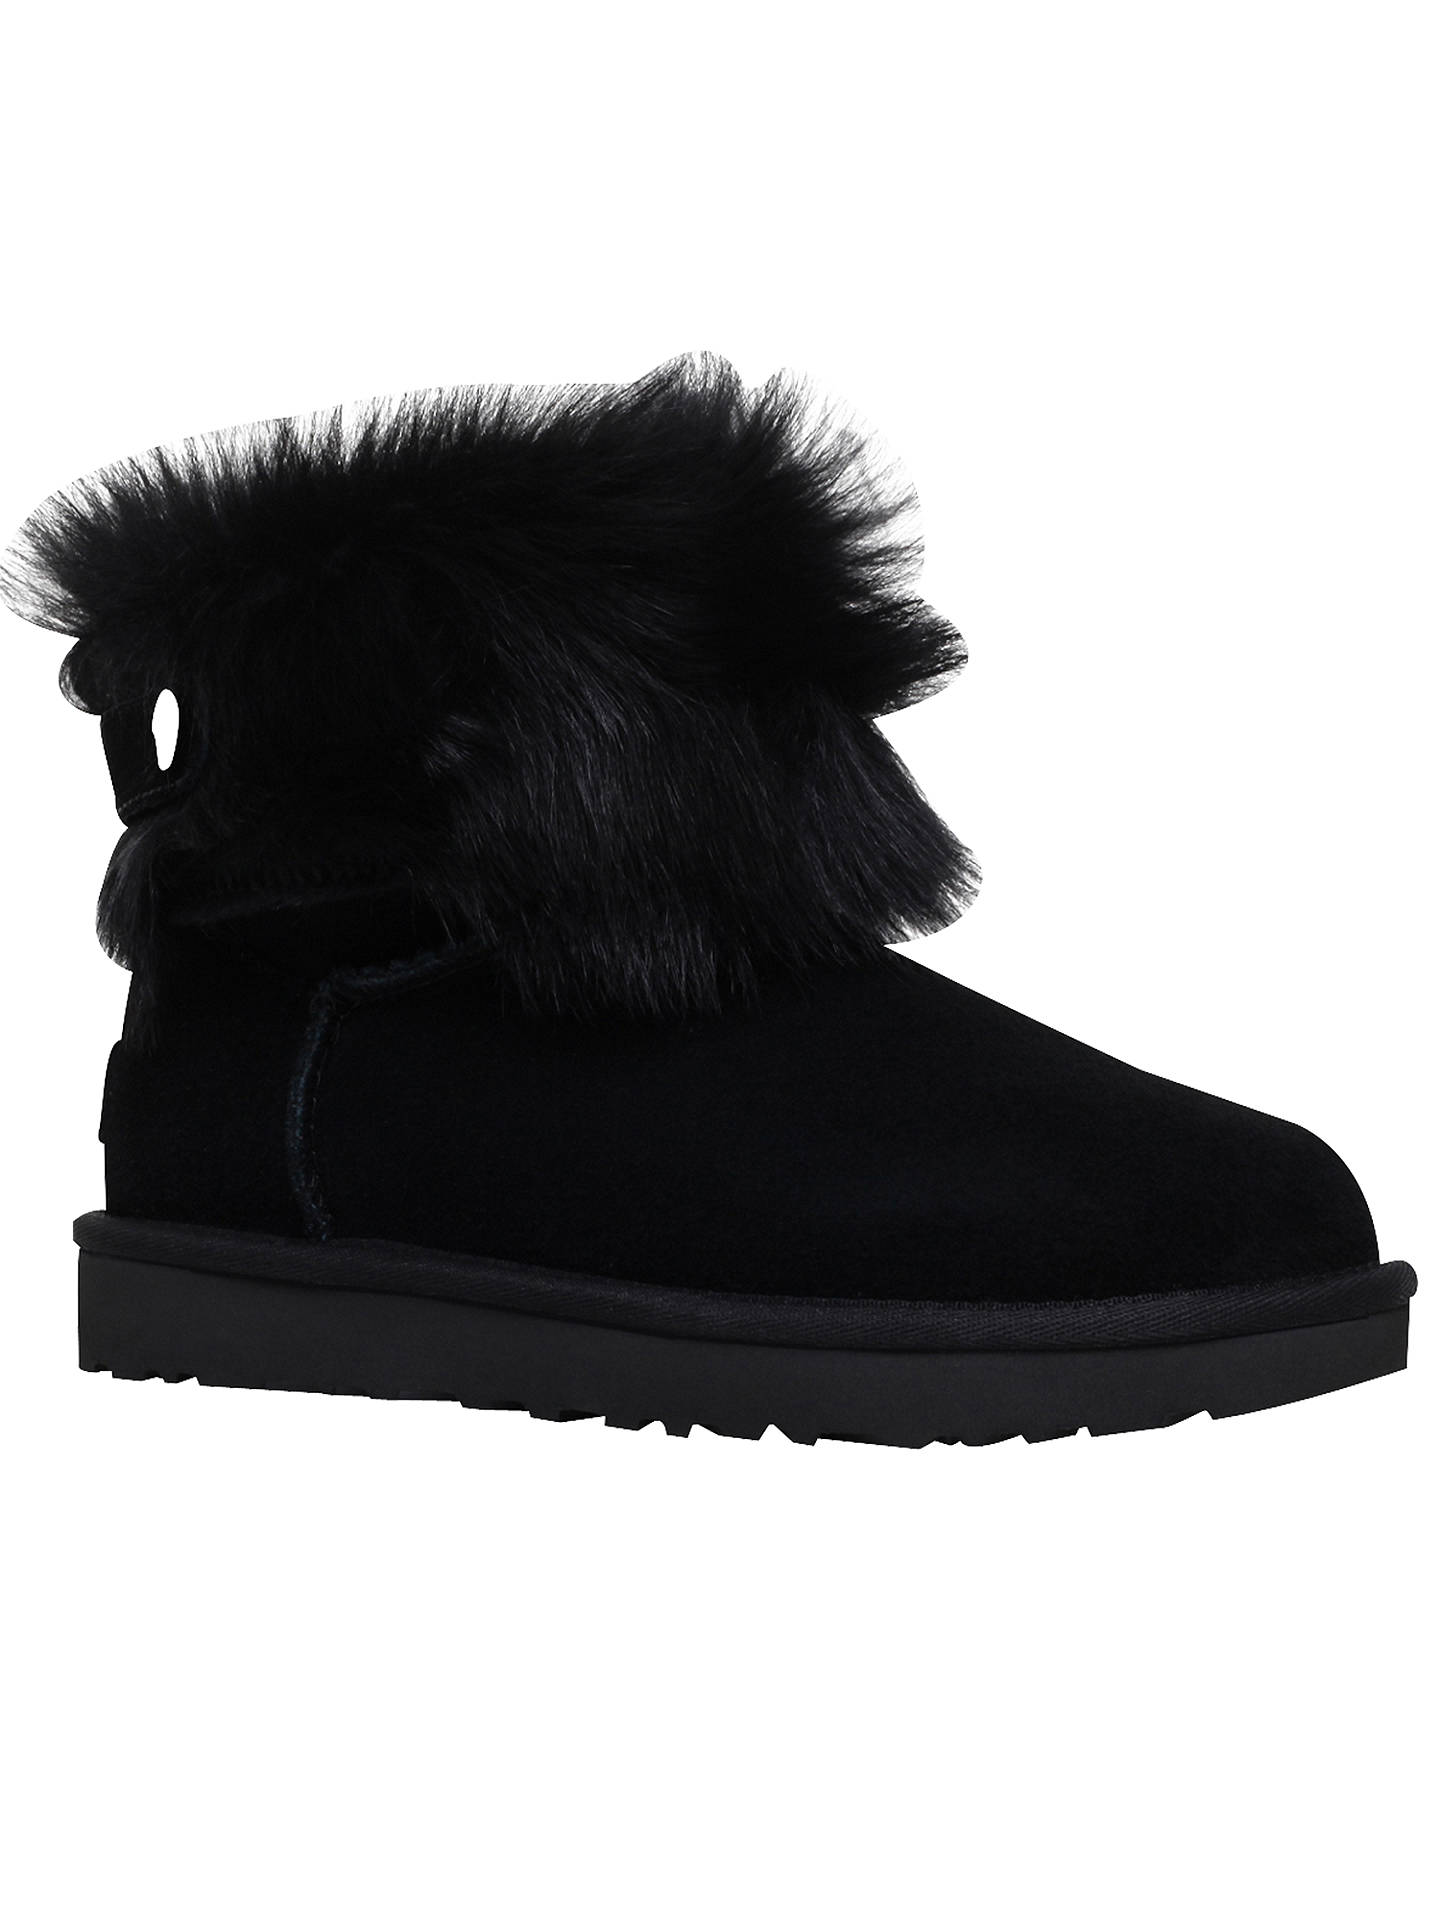 Ugg Valentina Ankle Boots At John Lewis Amp Partners